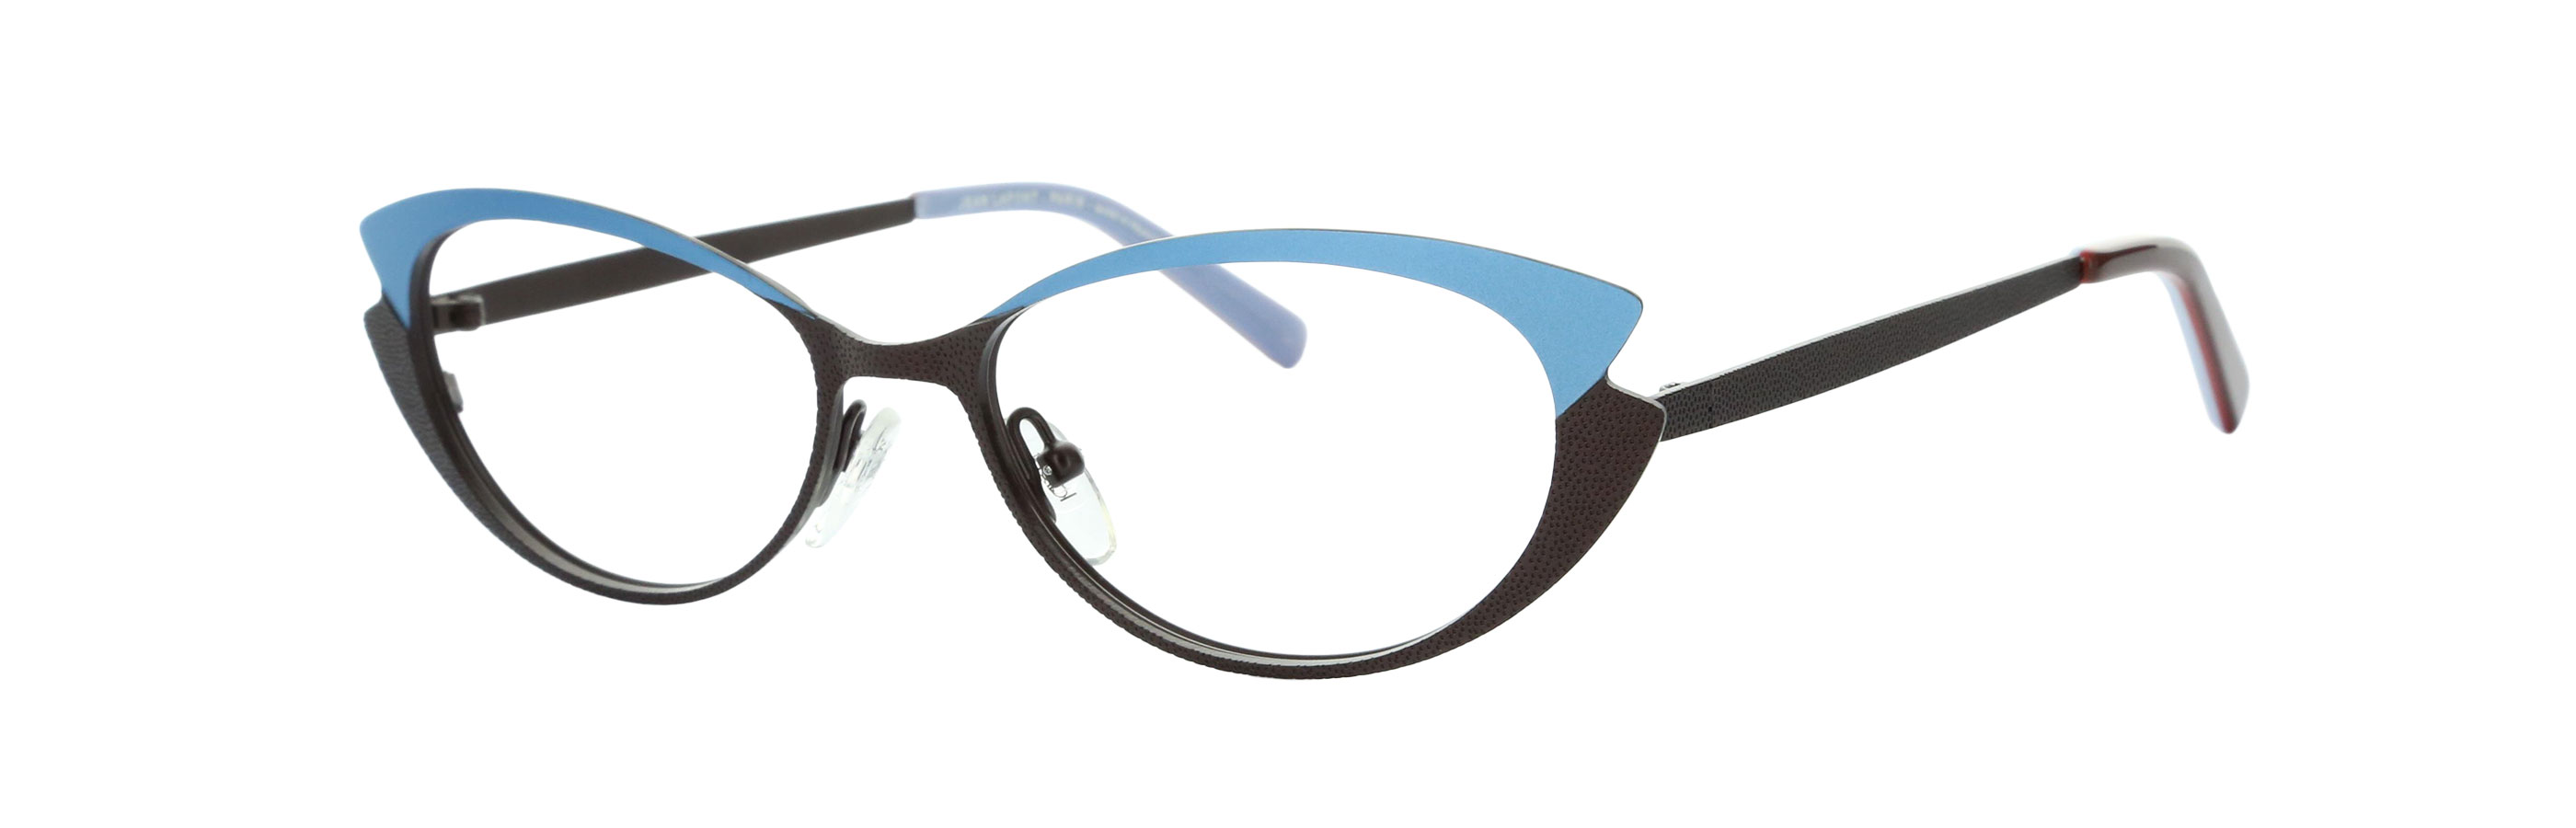 fdeaf789fae cheapest lafont eyeglasses in deerfield beach and boca raton